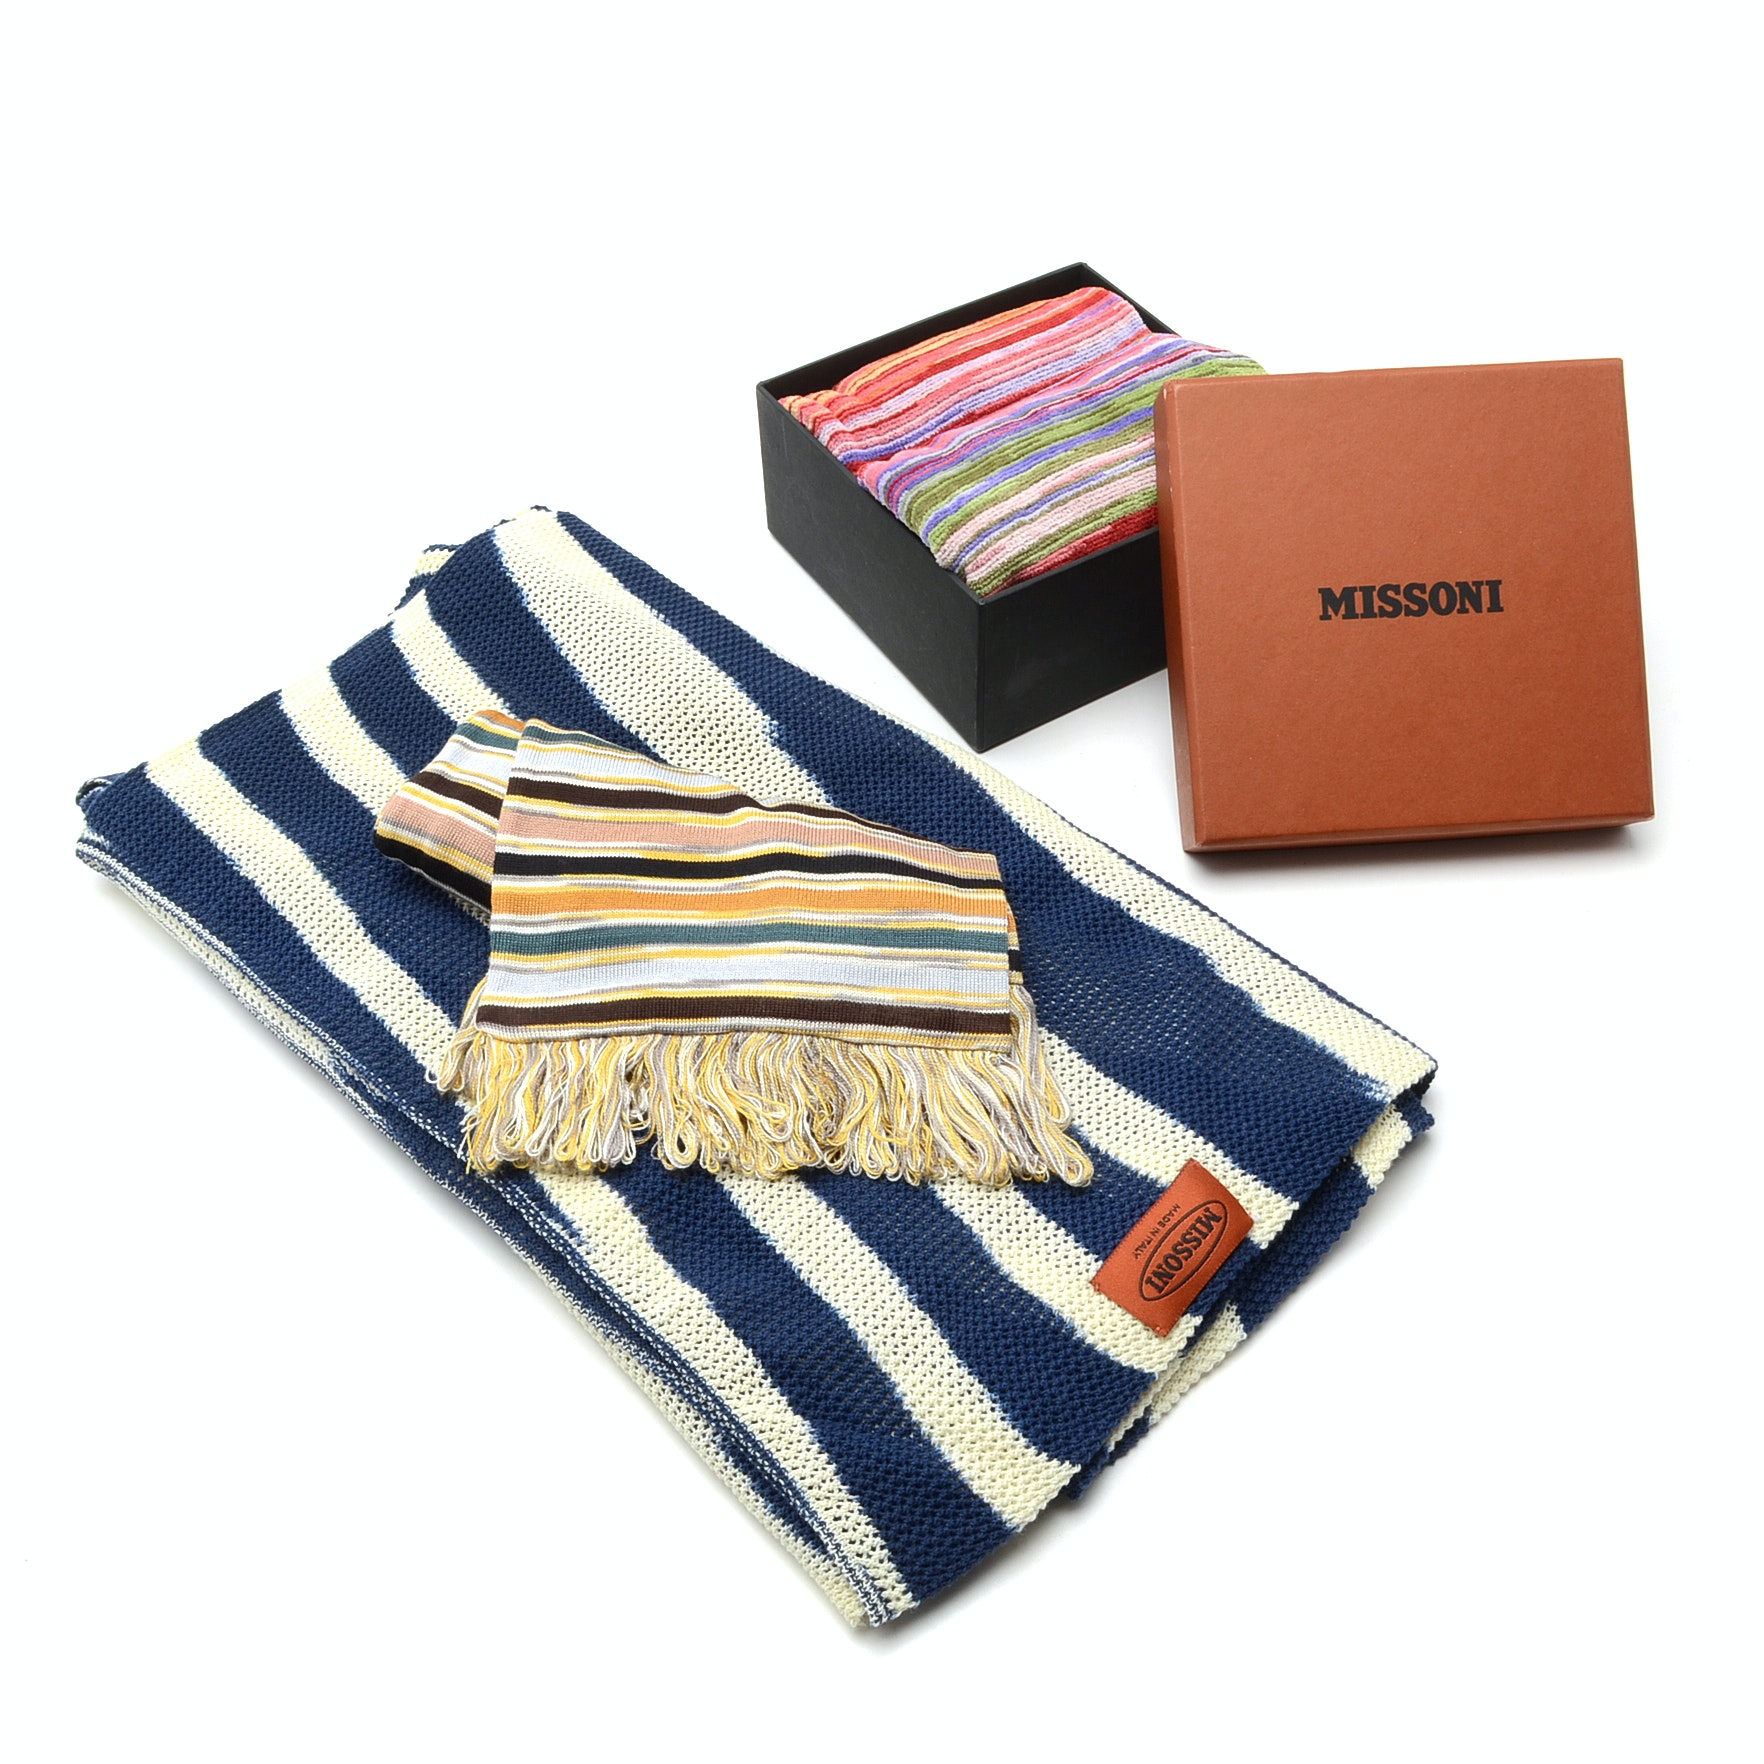 Missoni Towels and Scarves